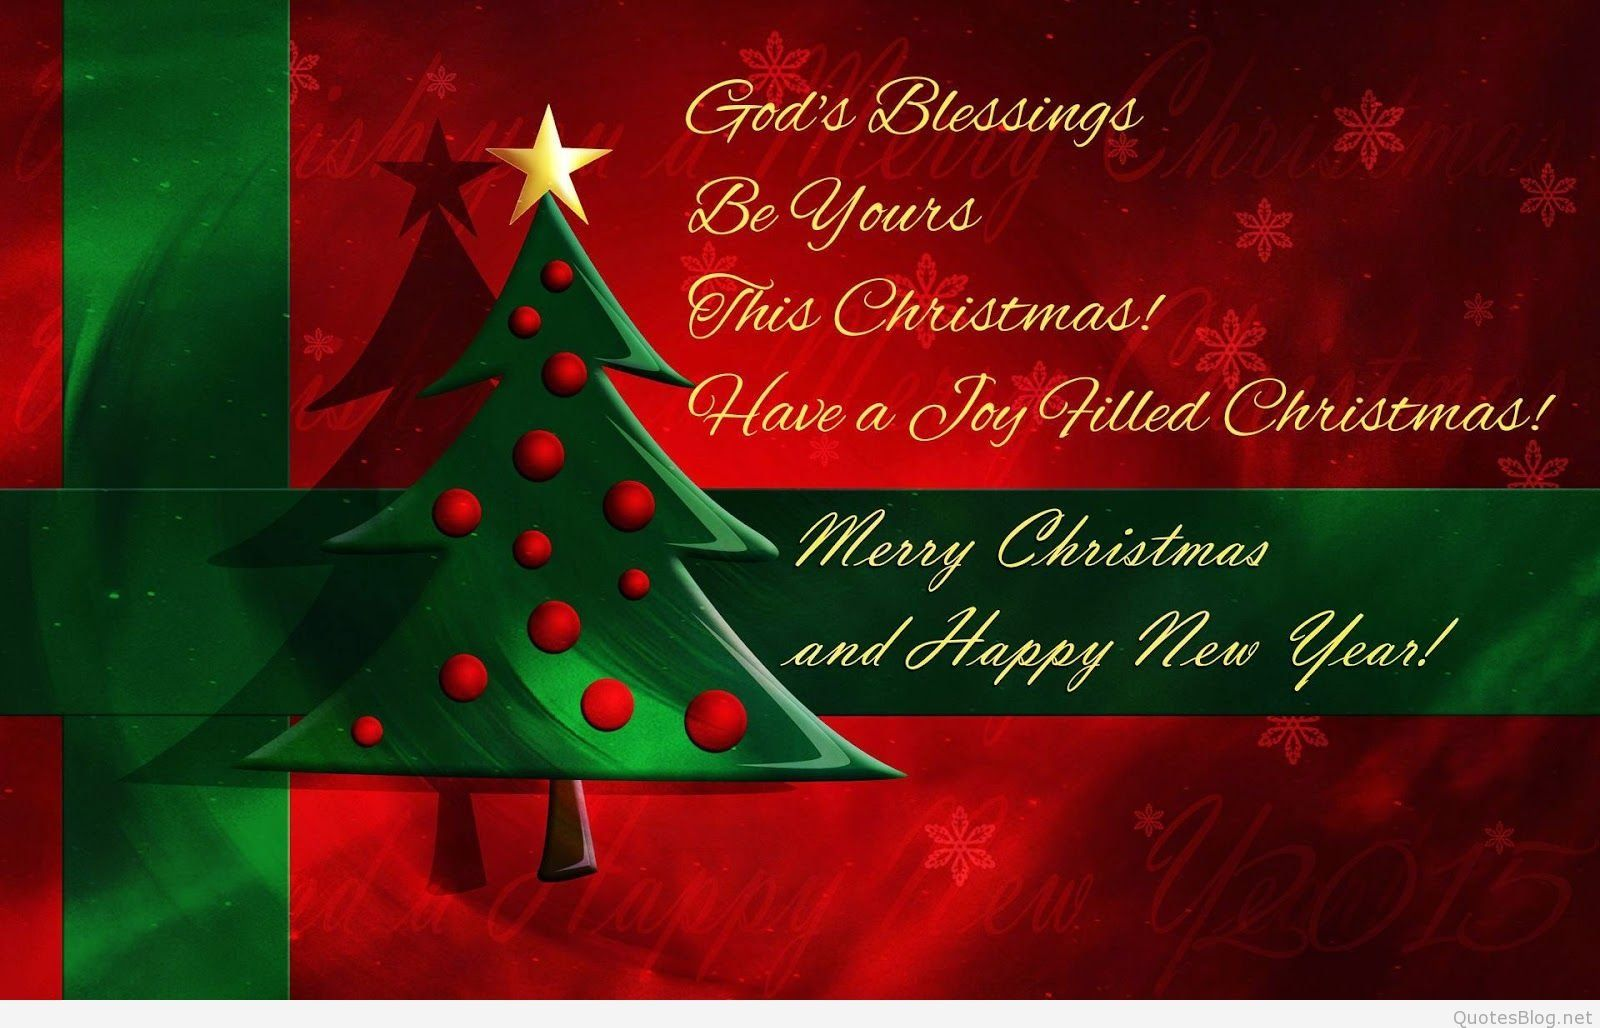 Gods blessings christmas navidad pinterest navidad have a joy filled cristmas christmas merry christmas happy holidays christmas quotes religious christmas quotes merry christmas quotes quotes about kristyandbryce Image collections